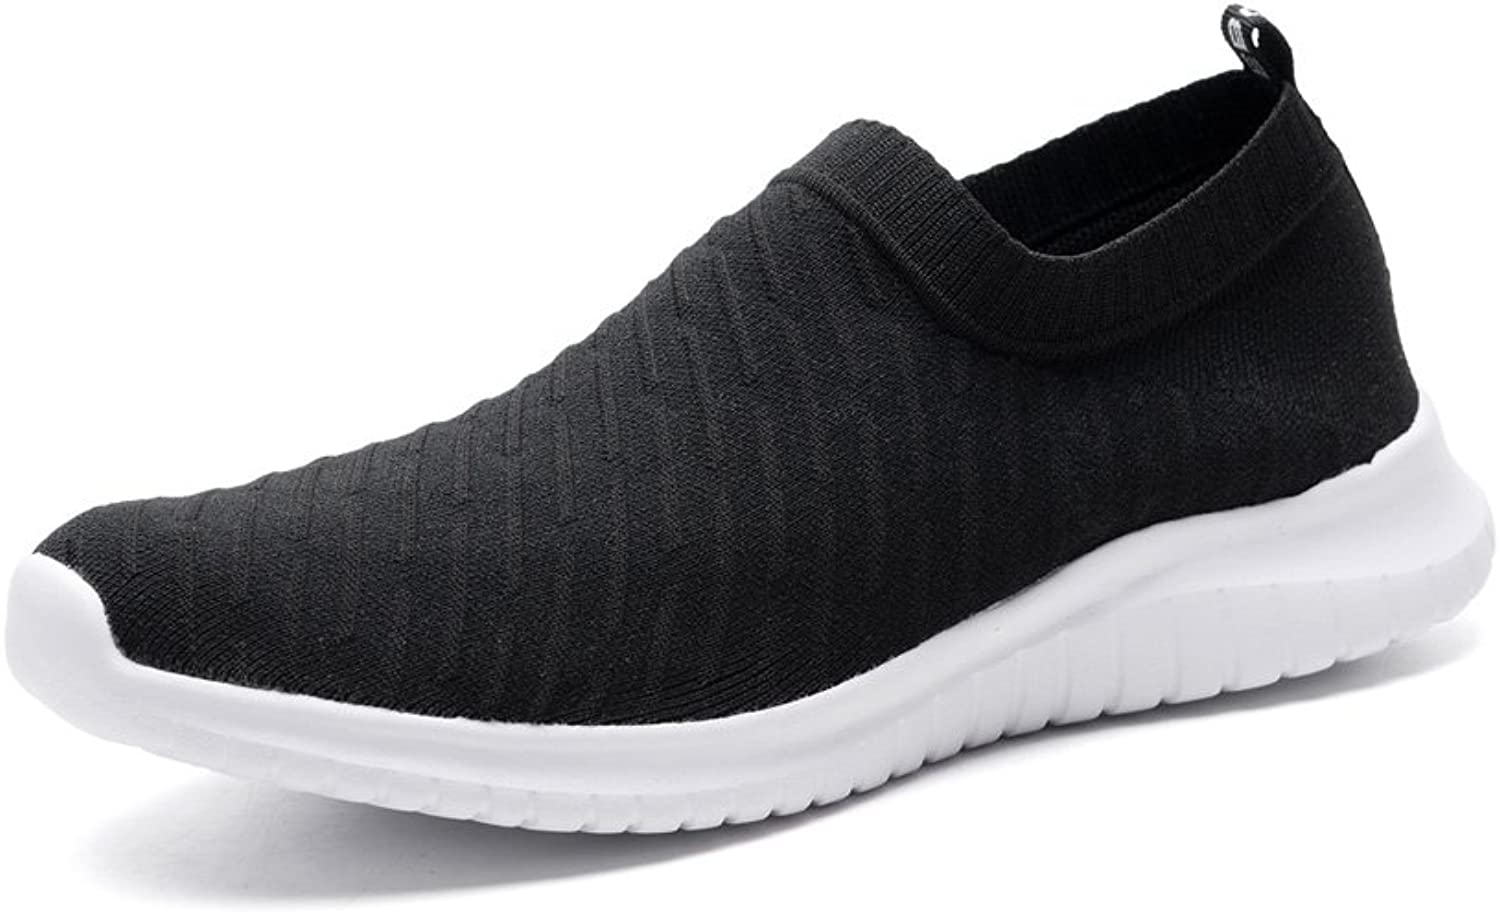 Xuancai Women's Breathable Lightweight Walking shoes Slip-On Sneakers